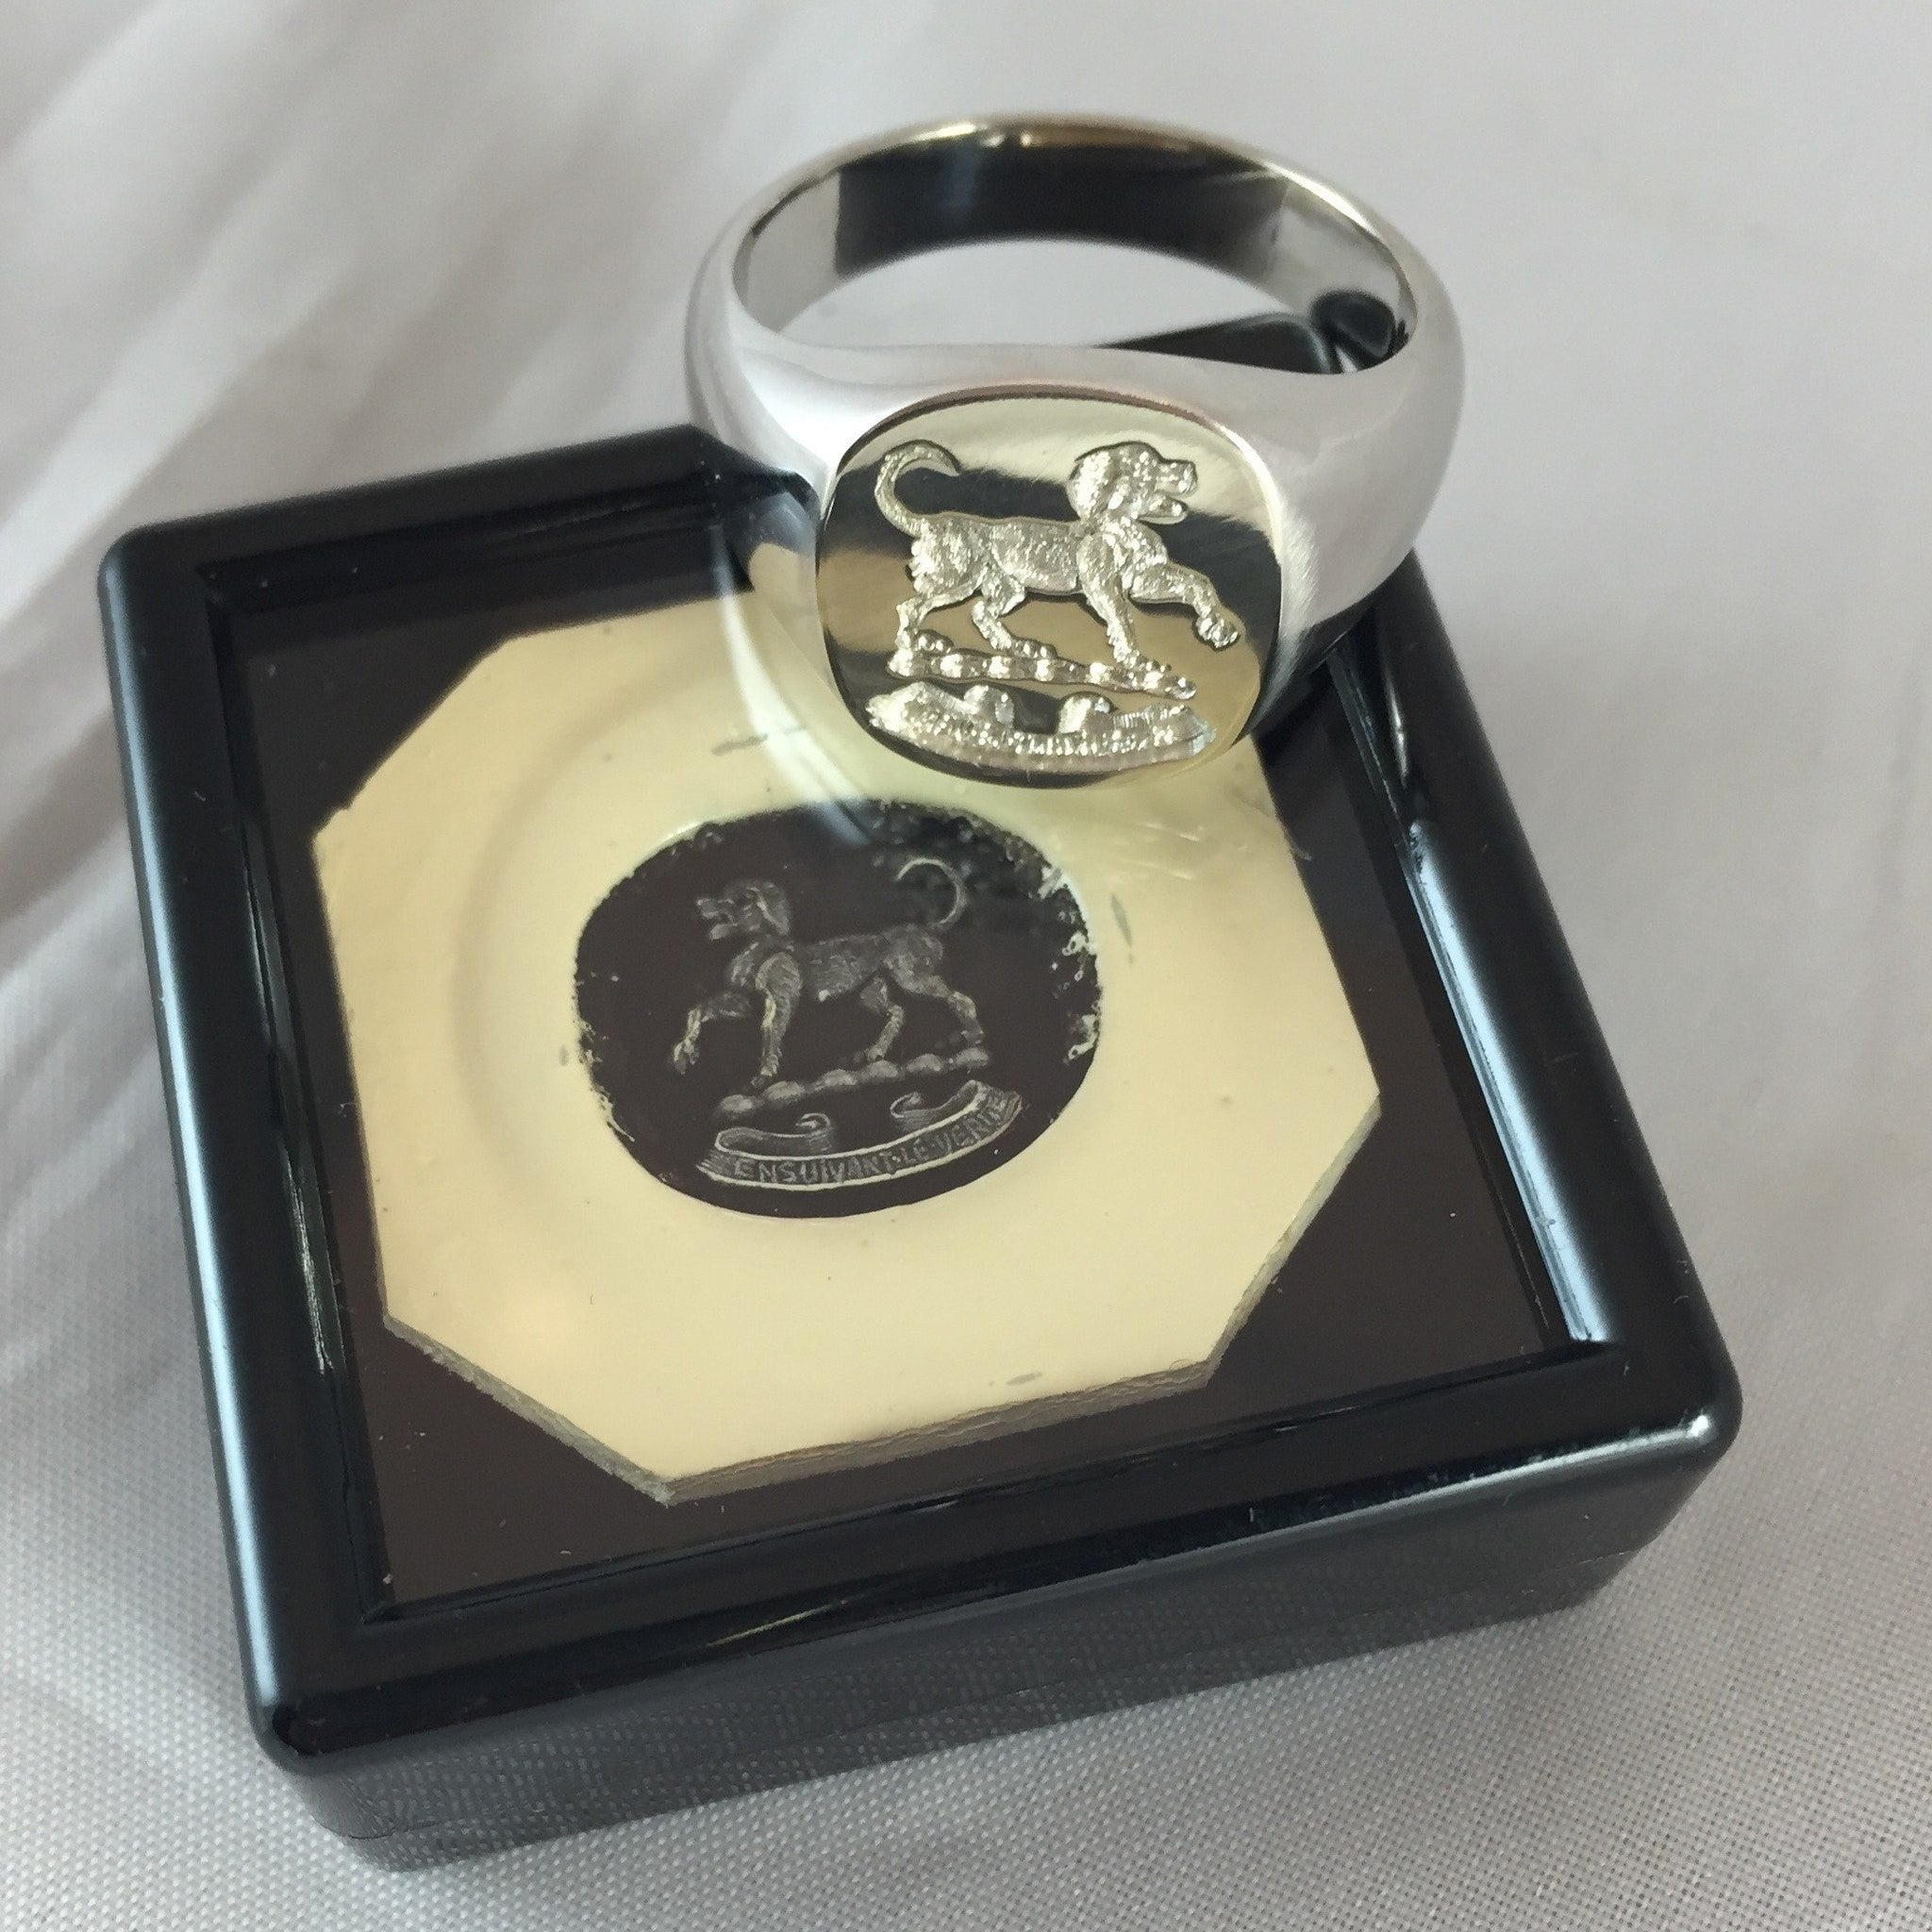 rings maker crest silver s jewelry jewellery family pin gold custom on nelly ley hand by engraved ring customer signet bespoke handcrafted